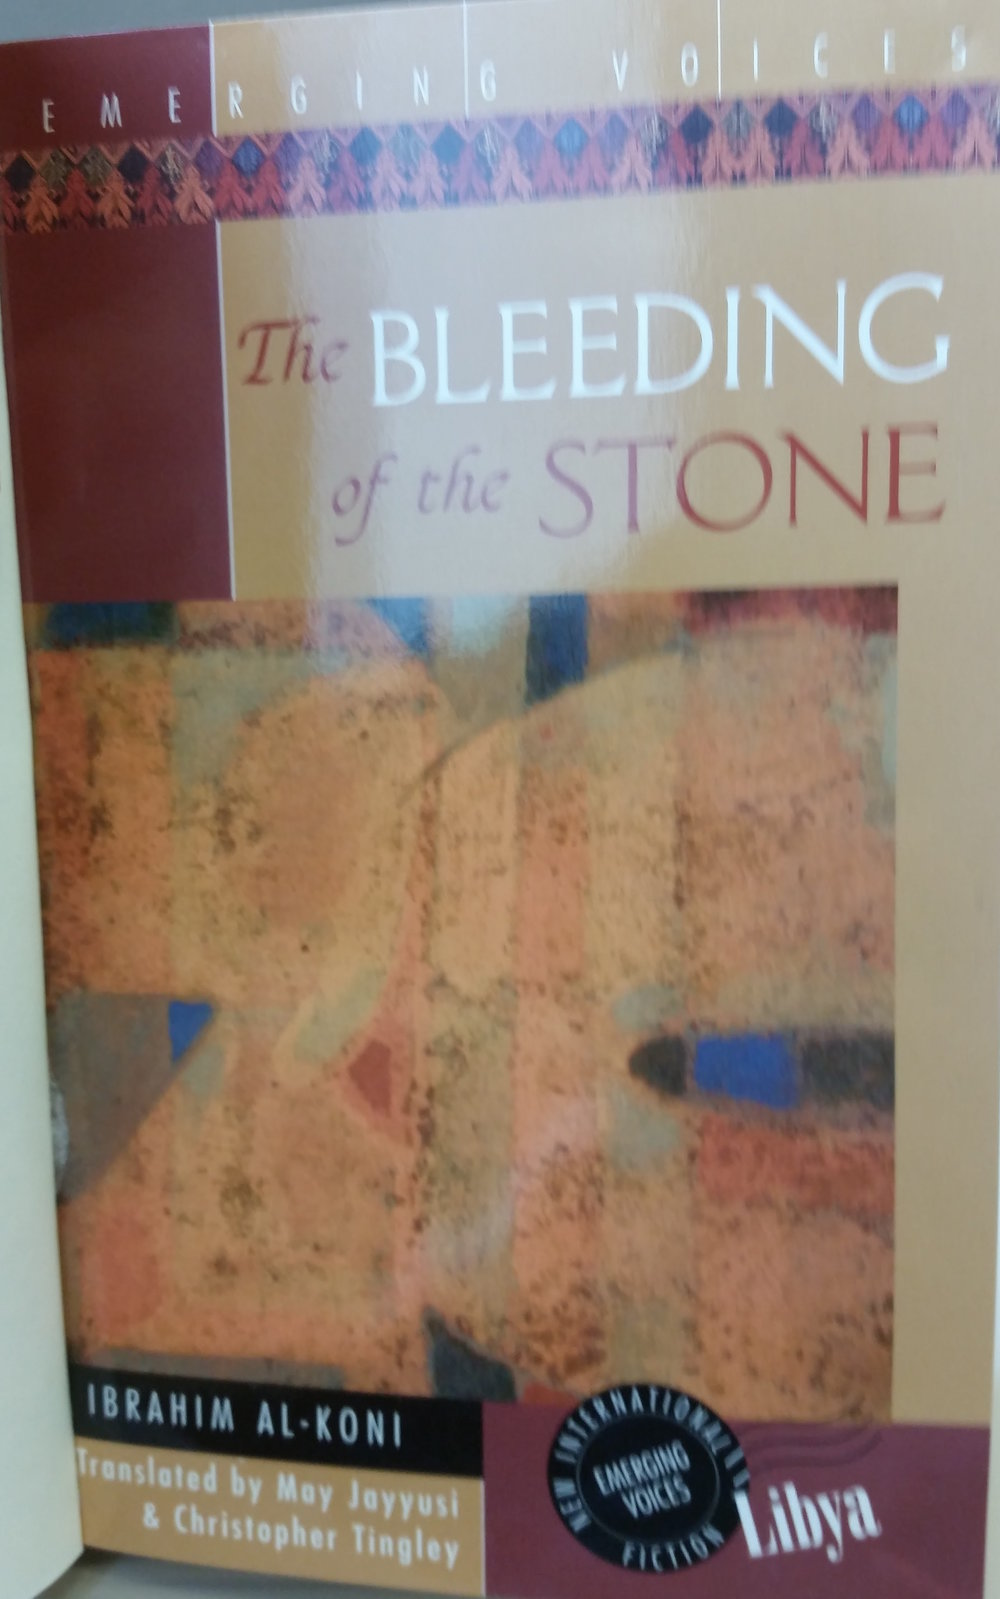 Ibrahim al-Koni's  The Bleeding of the Stone  (New York: Interlink Books, 2002). Translated by May Jayyusi and Christopher Tingley.